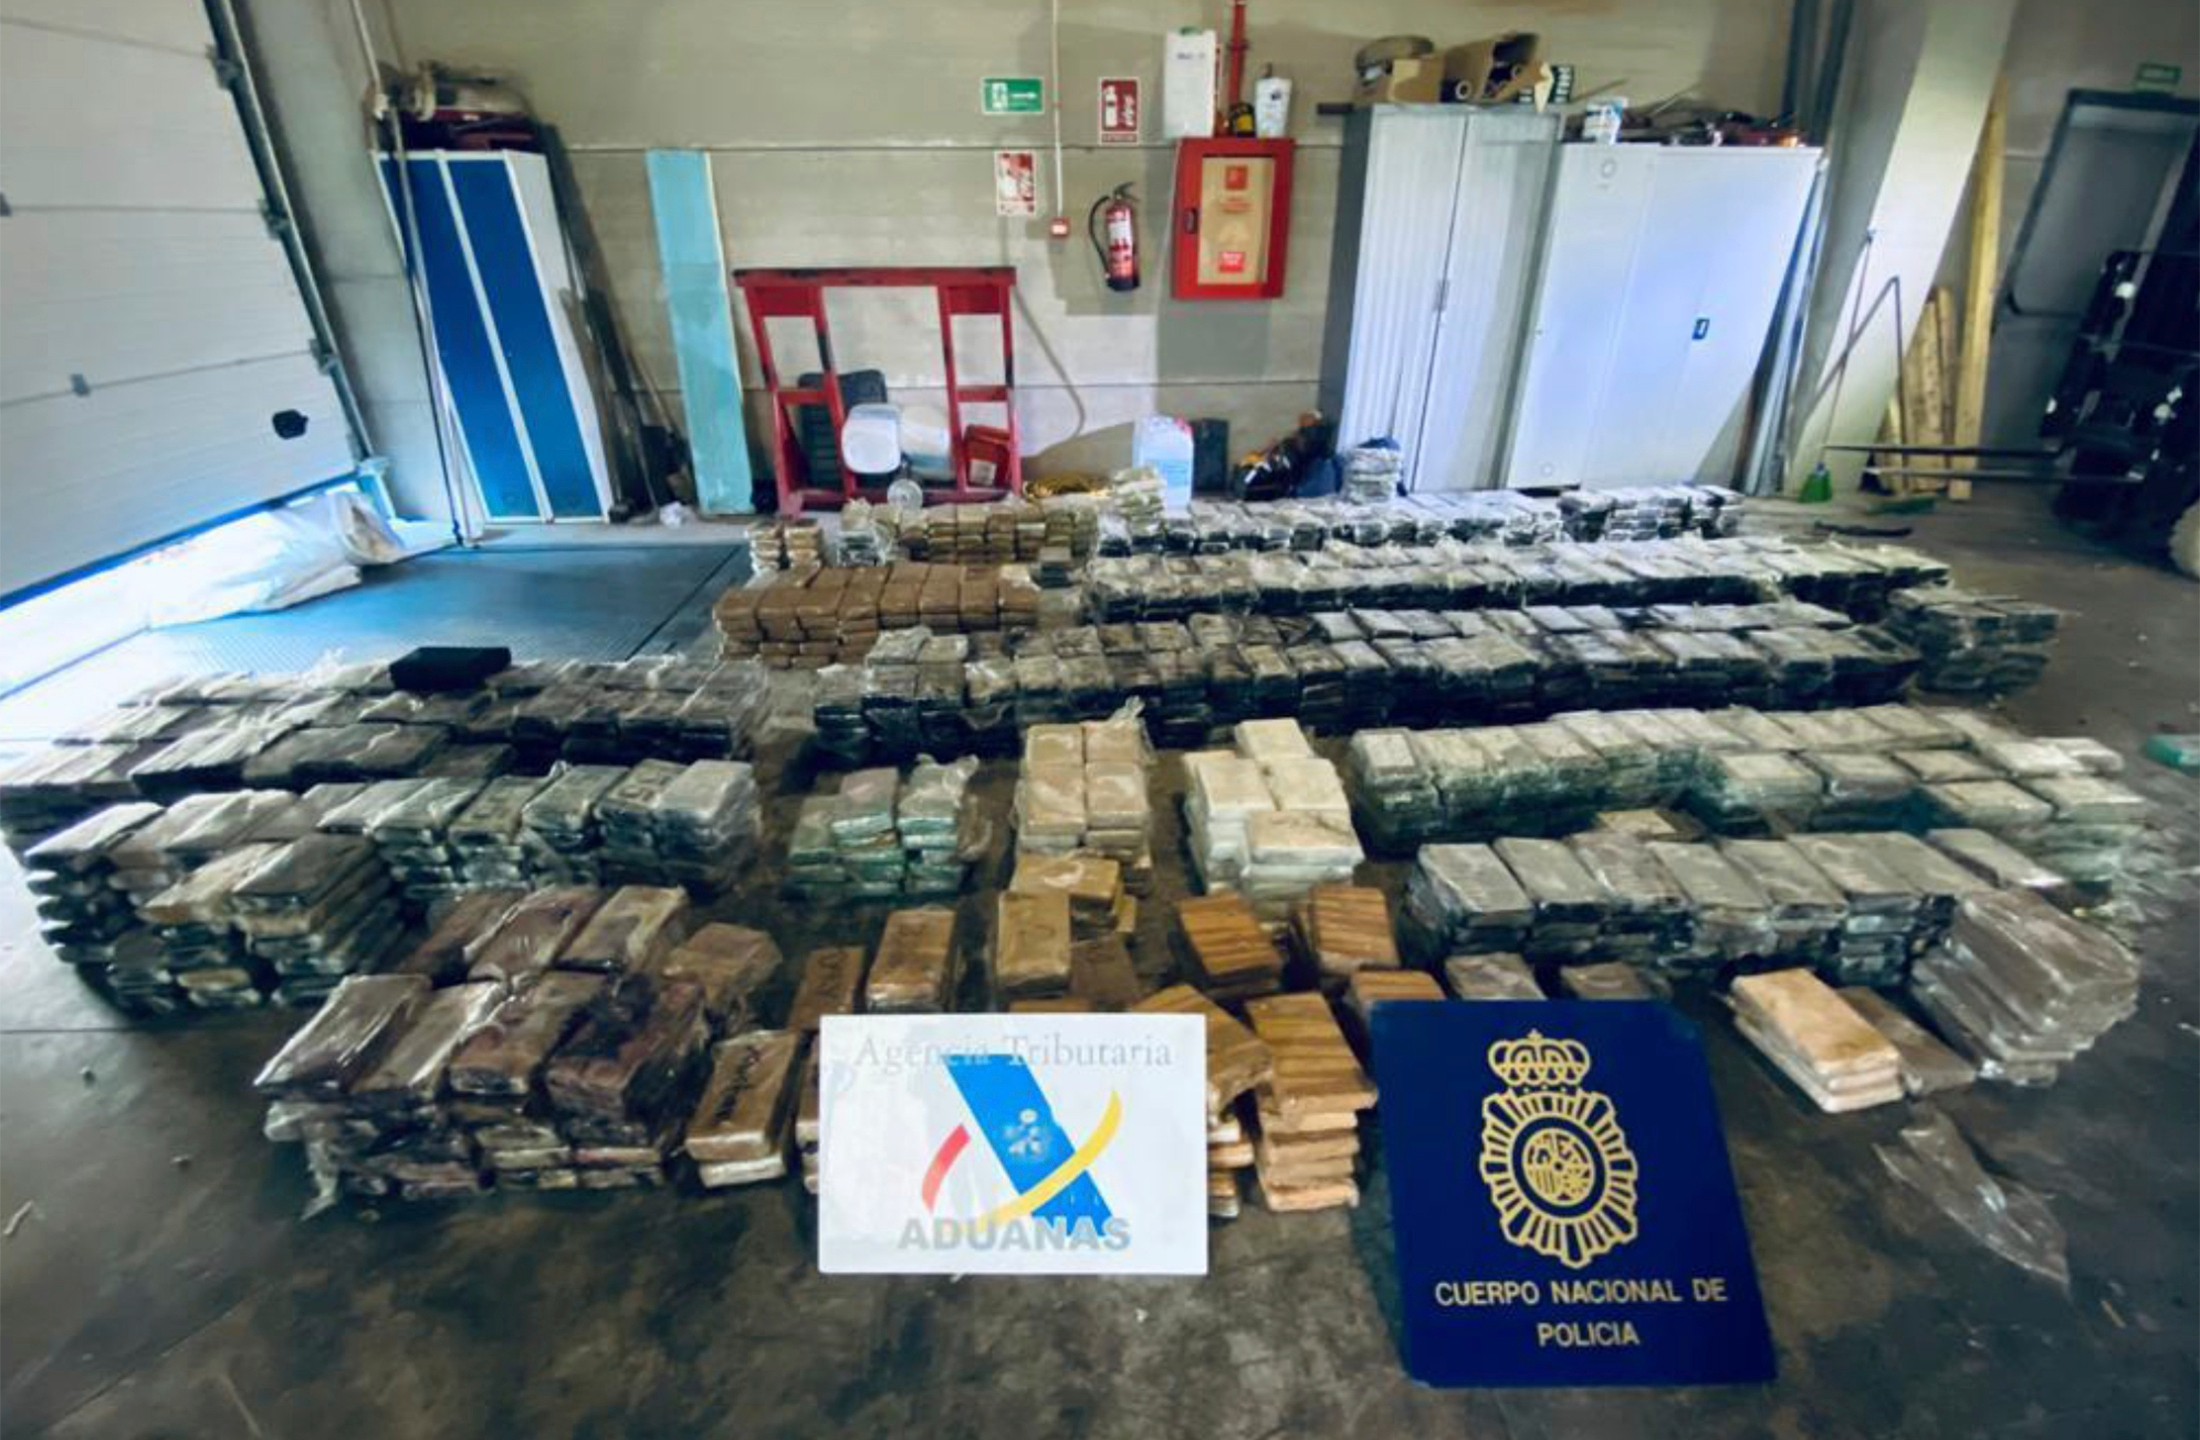 """This May 2021 image from an affidavit for a search warrant, provided by the U.S. Department of Justice, shows cocaine that had been transported in hollowed-out pineapples from Costa Rica to Spain. Law enforcement agencies learned about the shipment as part of a global sting operation unveiled Tuesday, June 8, 2021, that intercepted text messages criminals thought were secure. Authorities they said dealt an """"unprecedented blow"""" to organized crime in countries around the world. (Department of Justice via AP)"""